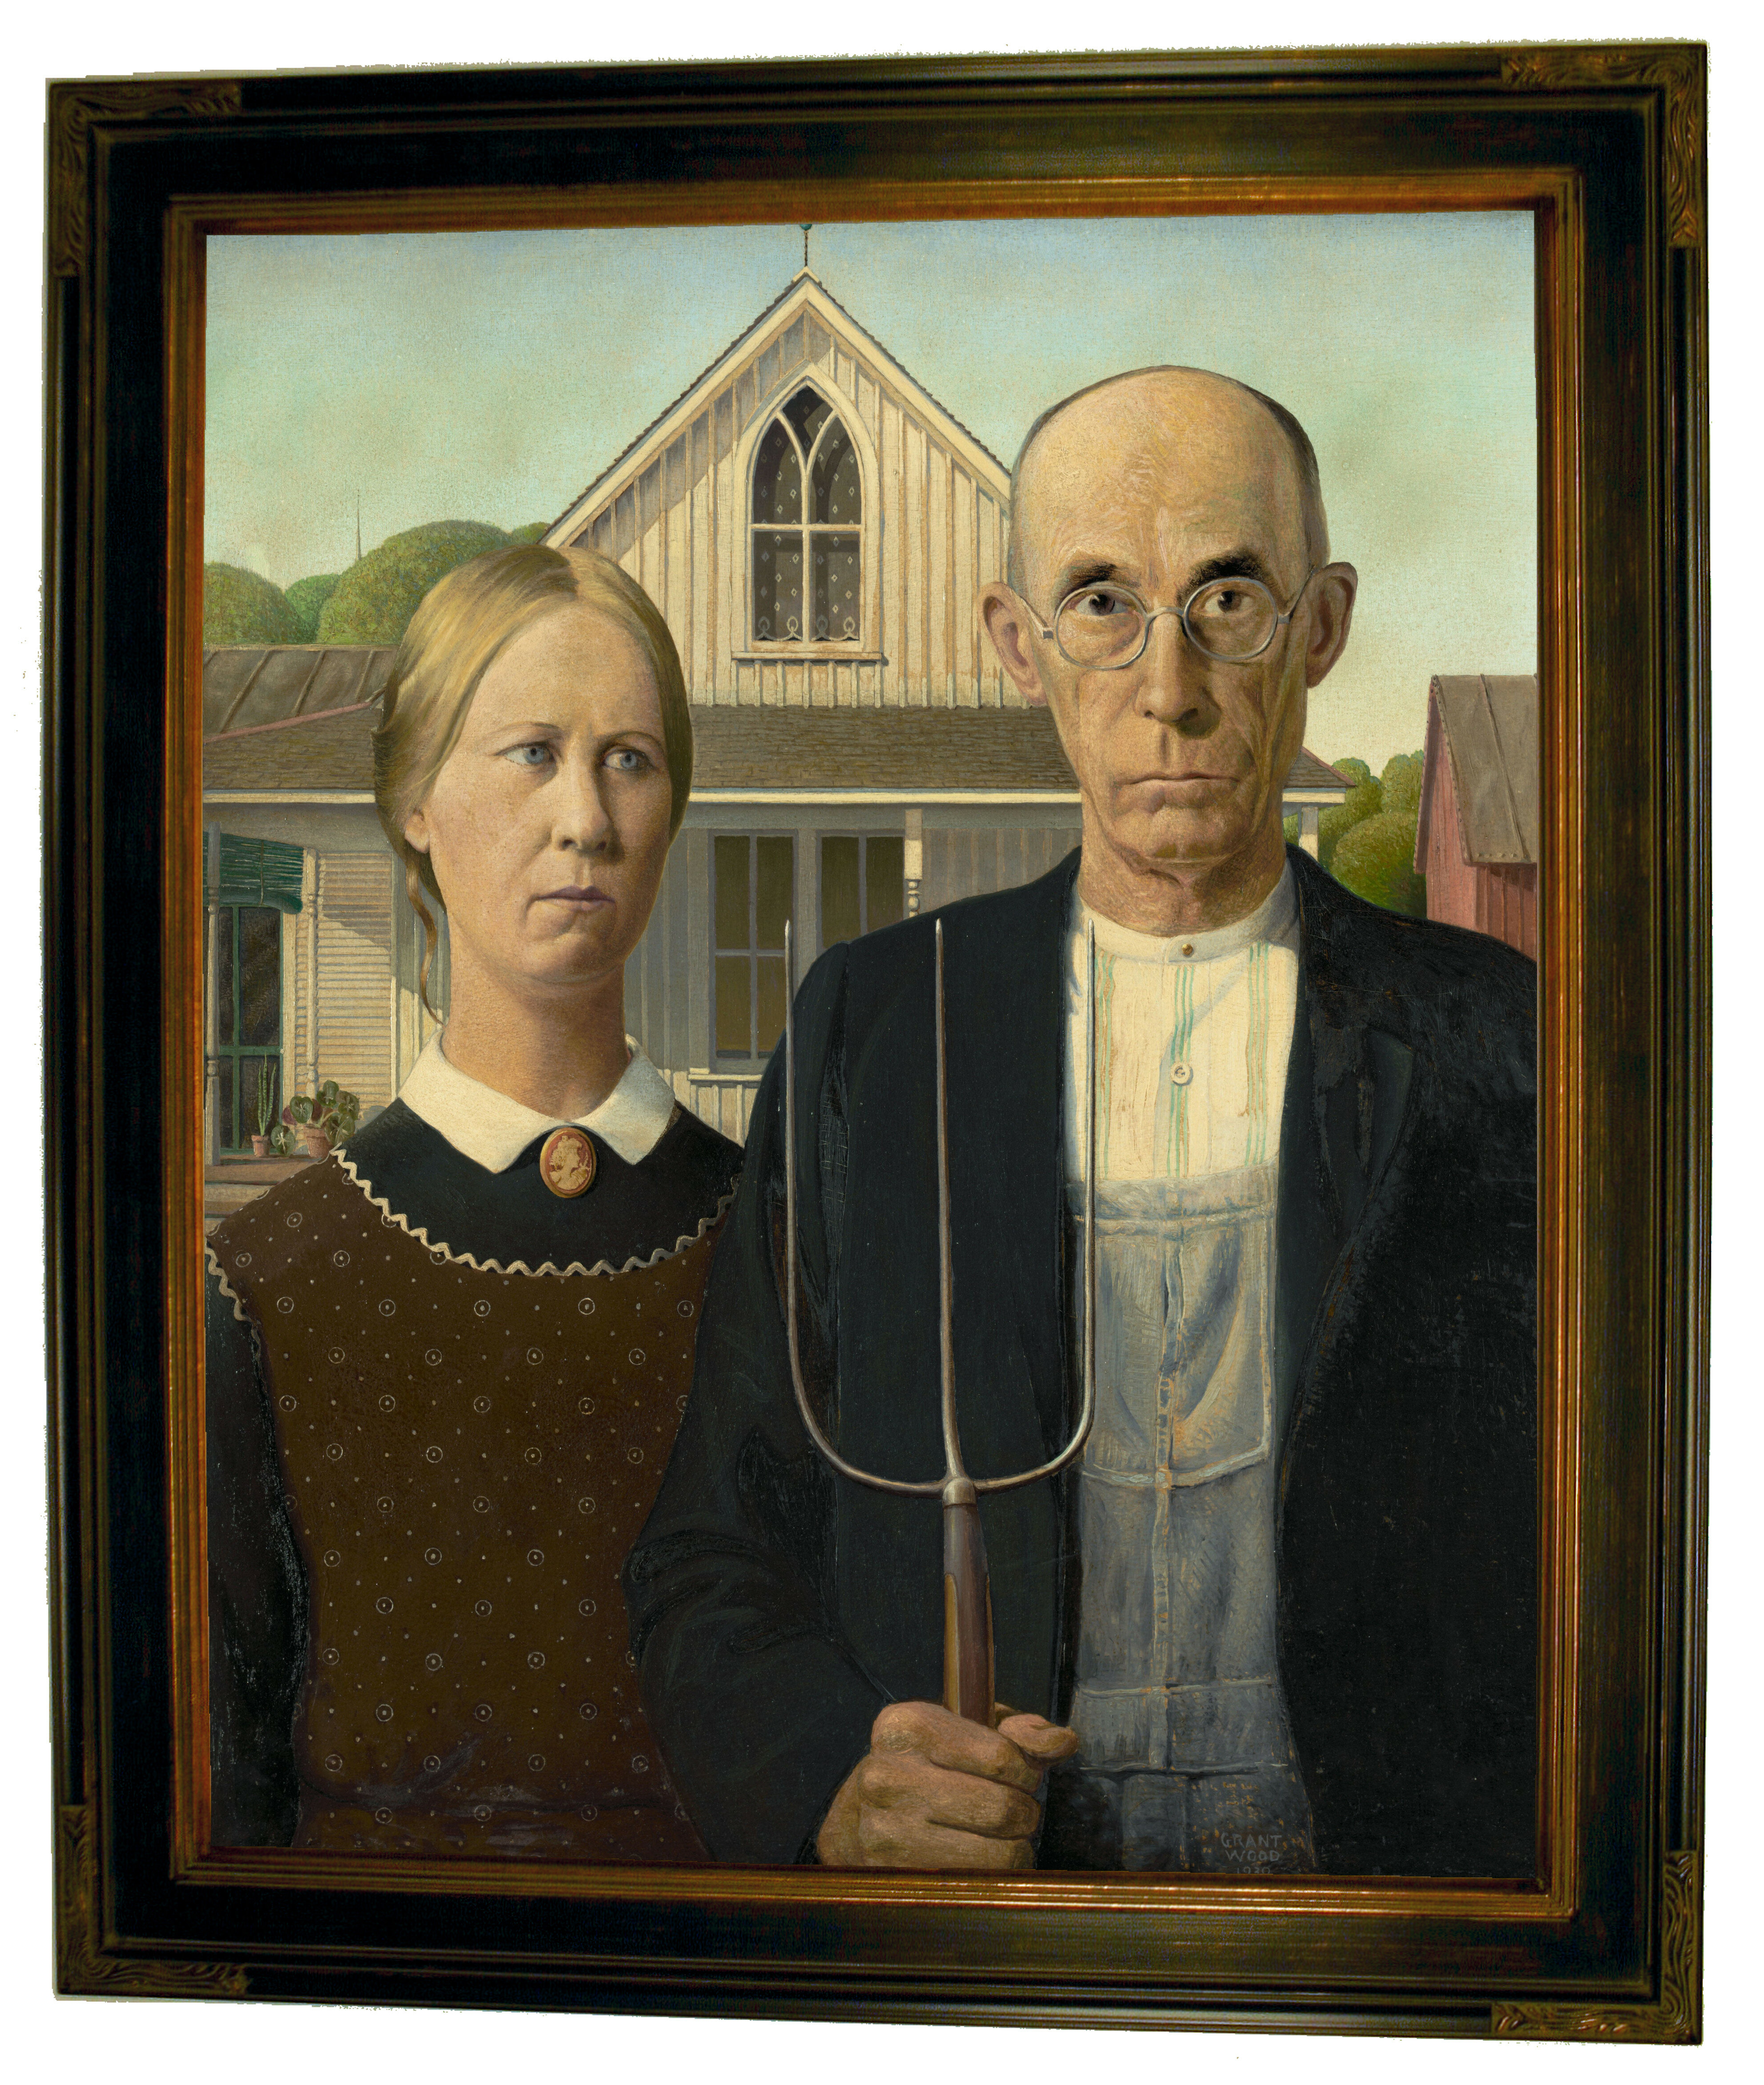 Historic Art Gallery American Gothic By Grant Wood Framed Painting Print Wayfair